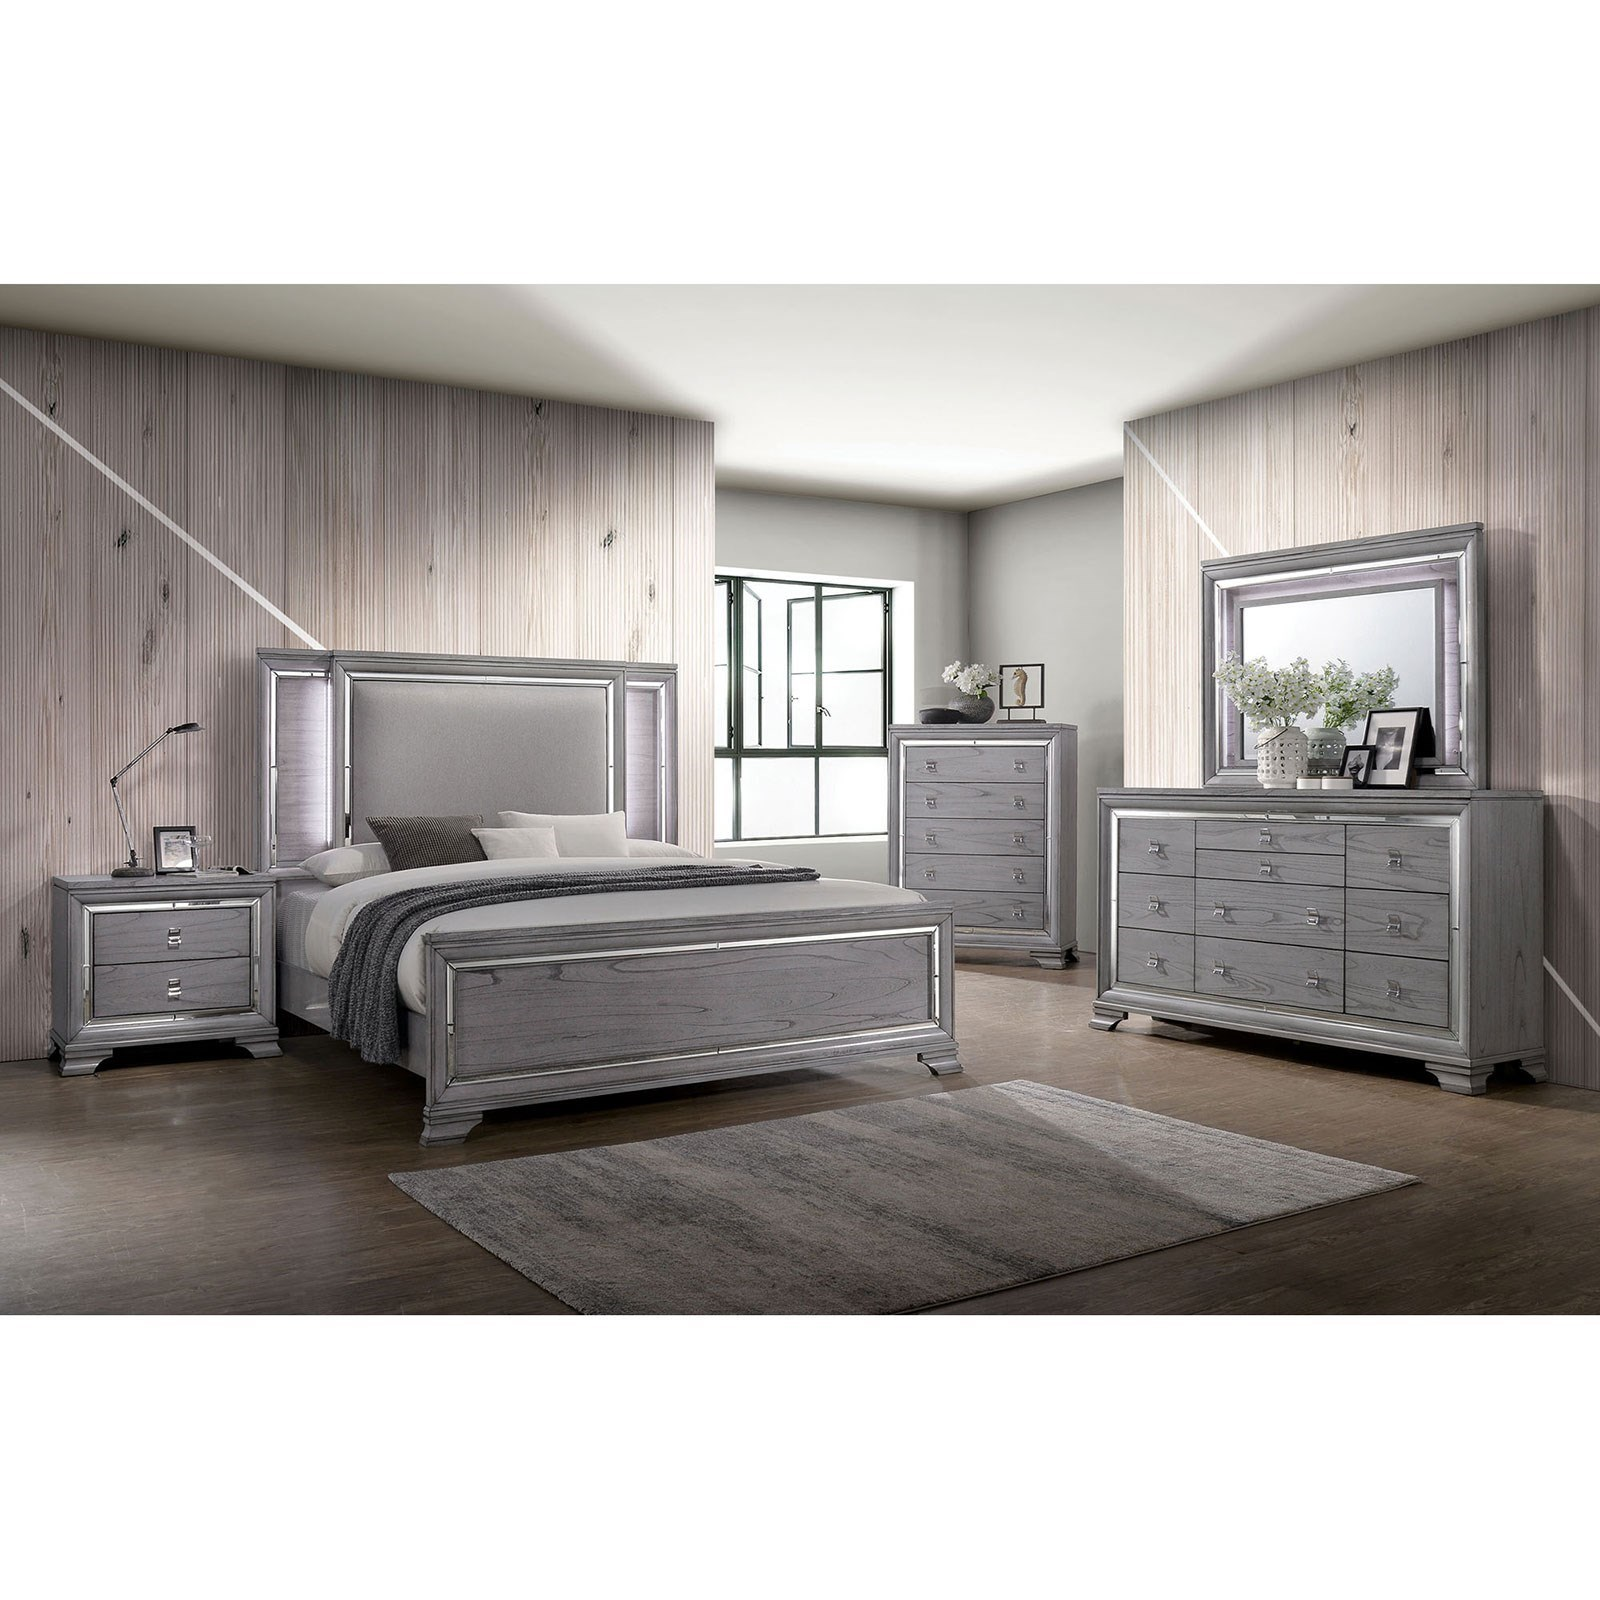 Alanis Queen Bedroom Group at Household Furniture